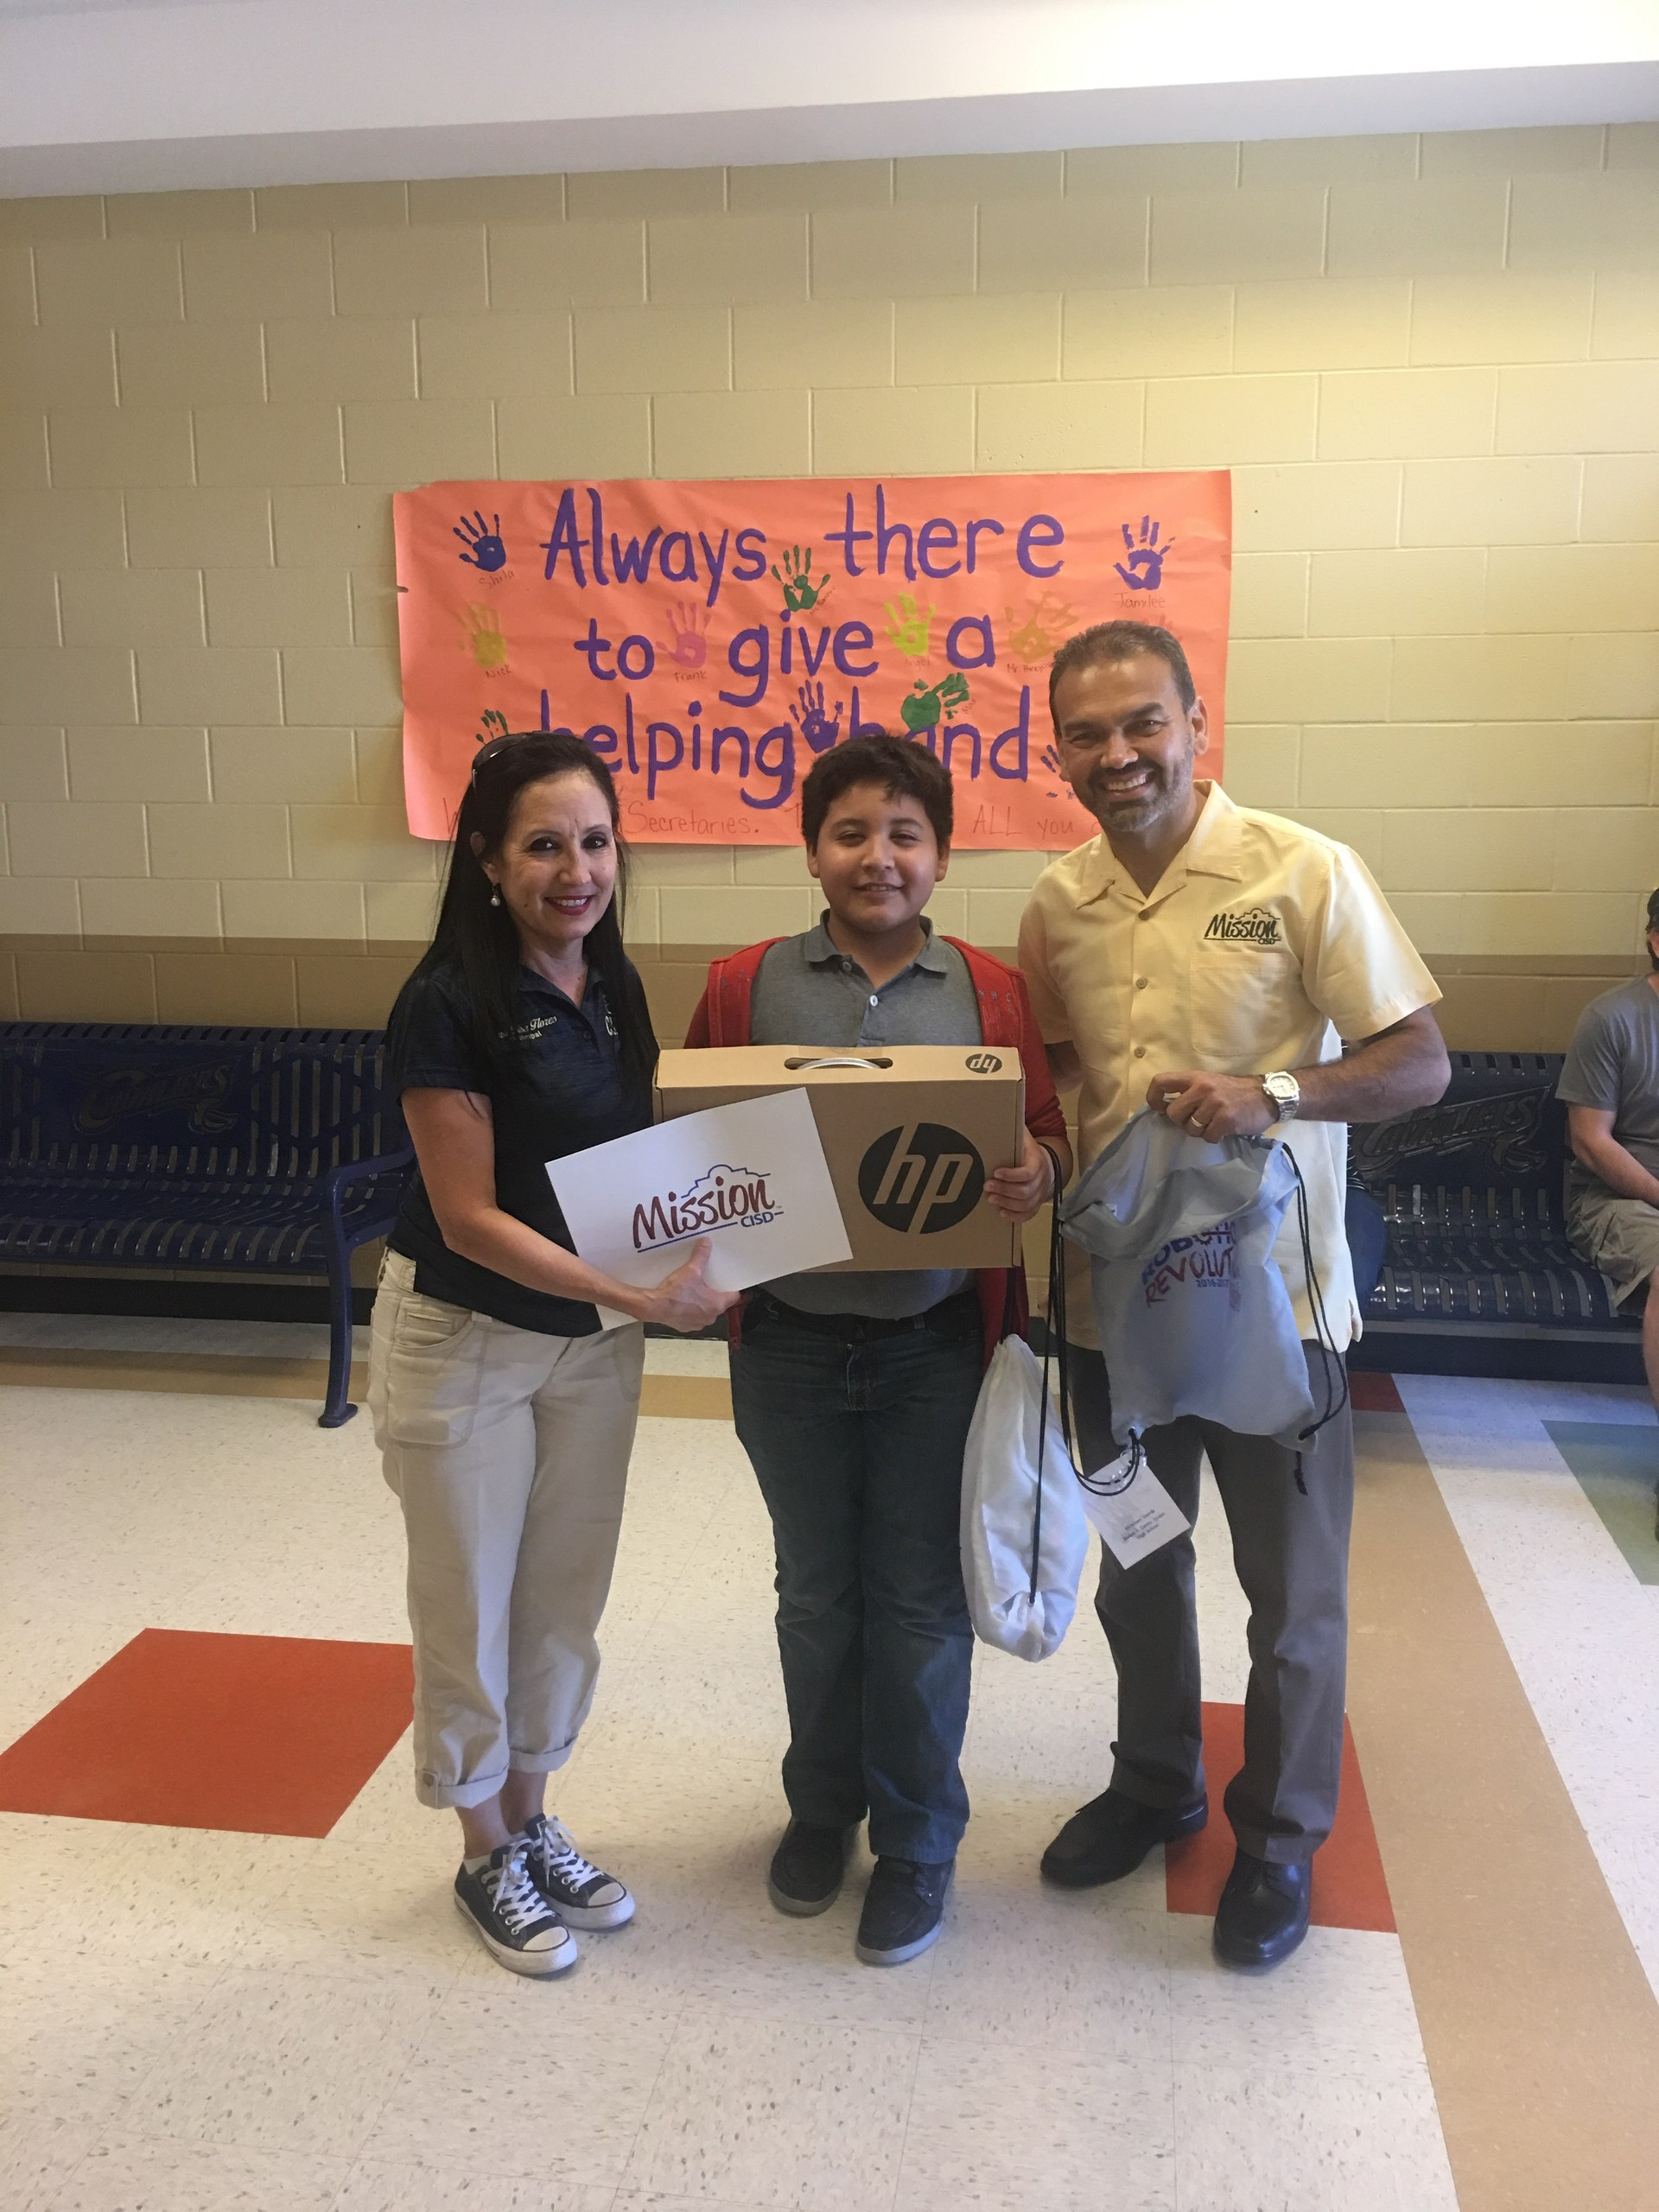 Ganador del Chromebook at Rafael Cantu Jr. High